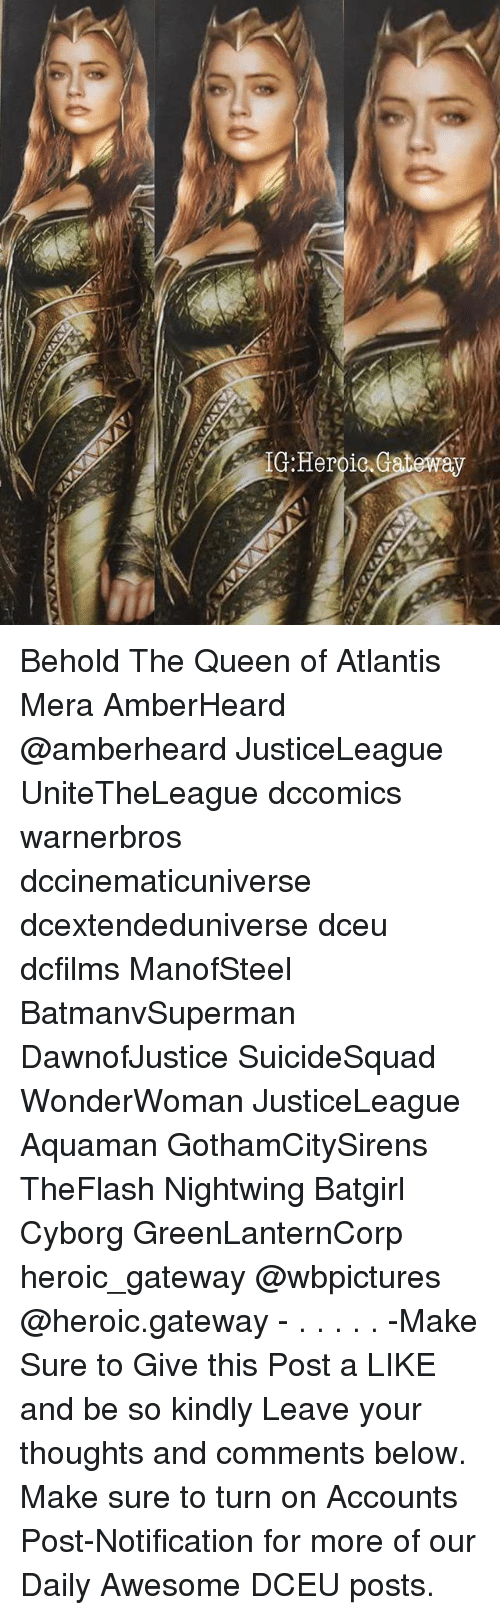 Memes, Queen, and Atlantis: Behold The Queen of Atlantis Mera AmberHeard @amberheard JusticeLeague UniteTheLeague dccomics warnerbros dccinematicuniverse dcextendeduniverse dceu dcfilms ManofSteel BatmanvSuperman DawnofJustice SuicideSquad WonderWoman JusticeLeague Aquaman GothamCitySirens TheFlash Nightwing Batgirl Cyborg GreenLanternCorp heroic_gateway @wbpictures @heroic.gateway - . . . . . -Make Sure to Give this Post a LIKE and be so kindly Leave your thoughts and comments below. Make sure to turn on Accounts Post-Notification for more of our Daily Awesome DCEU posts.